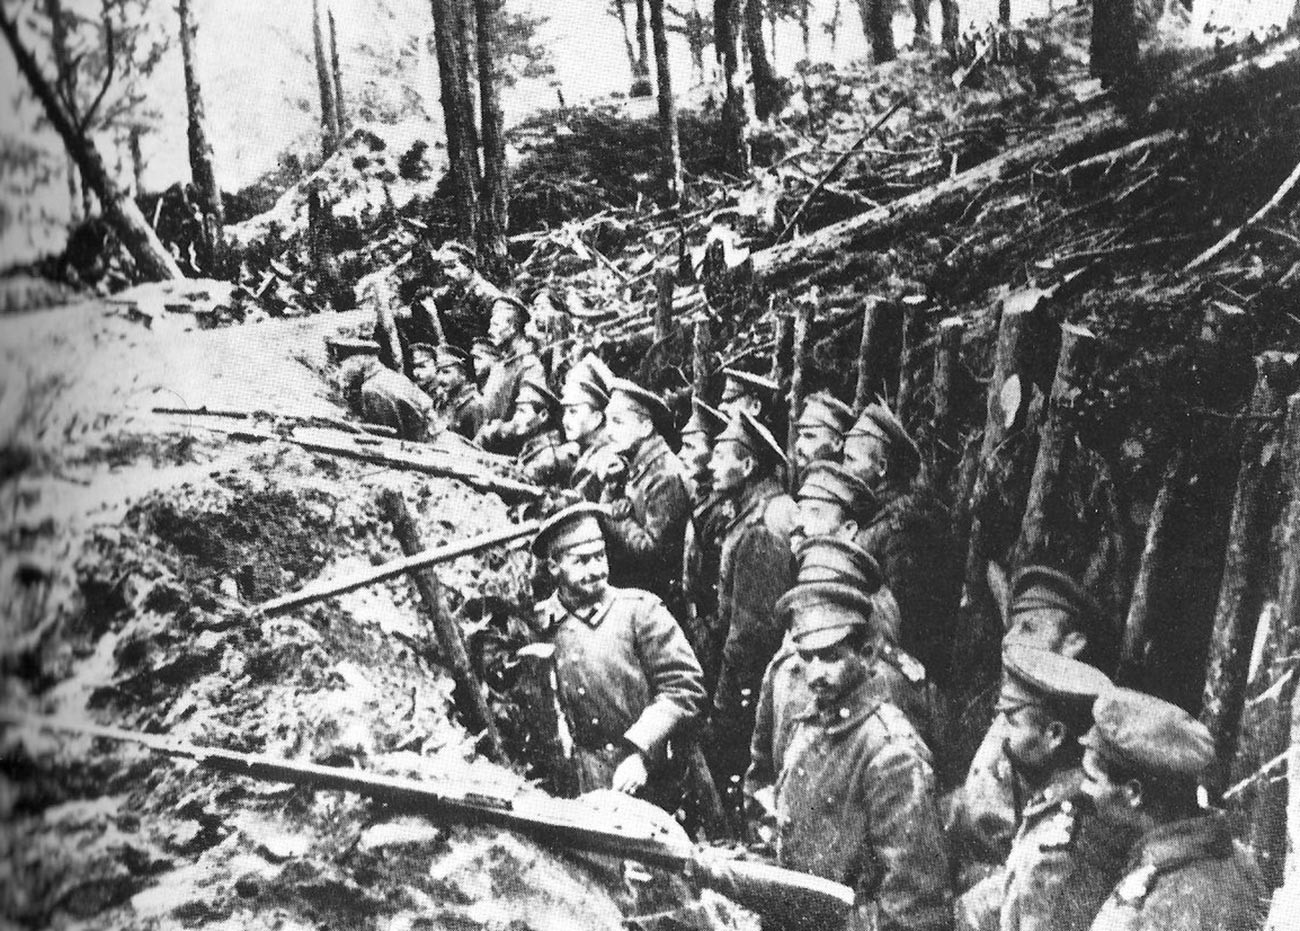 Russian trenches in the forests of Sarikamish.